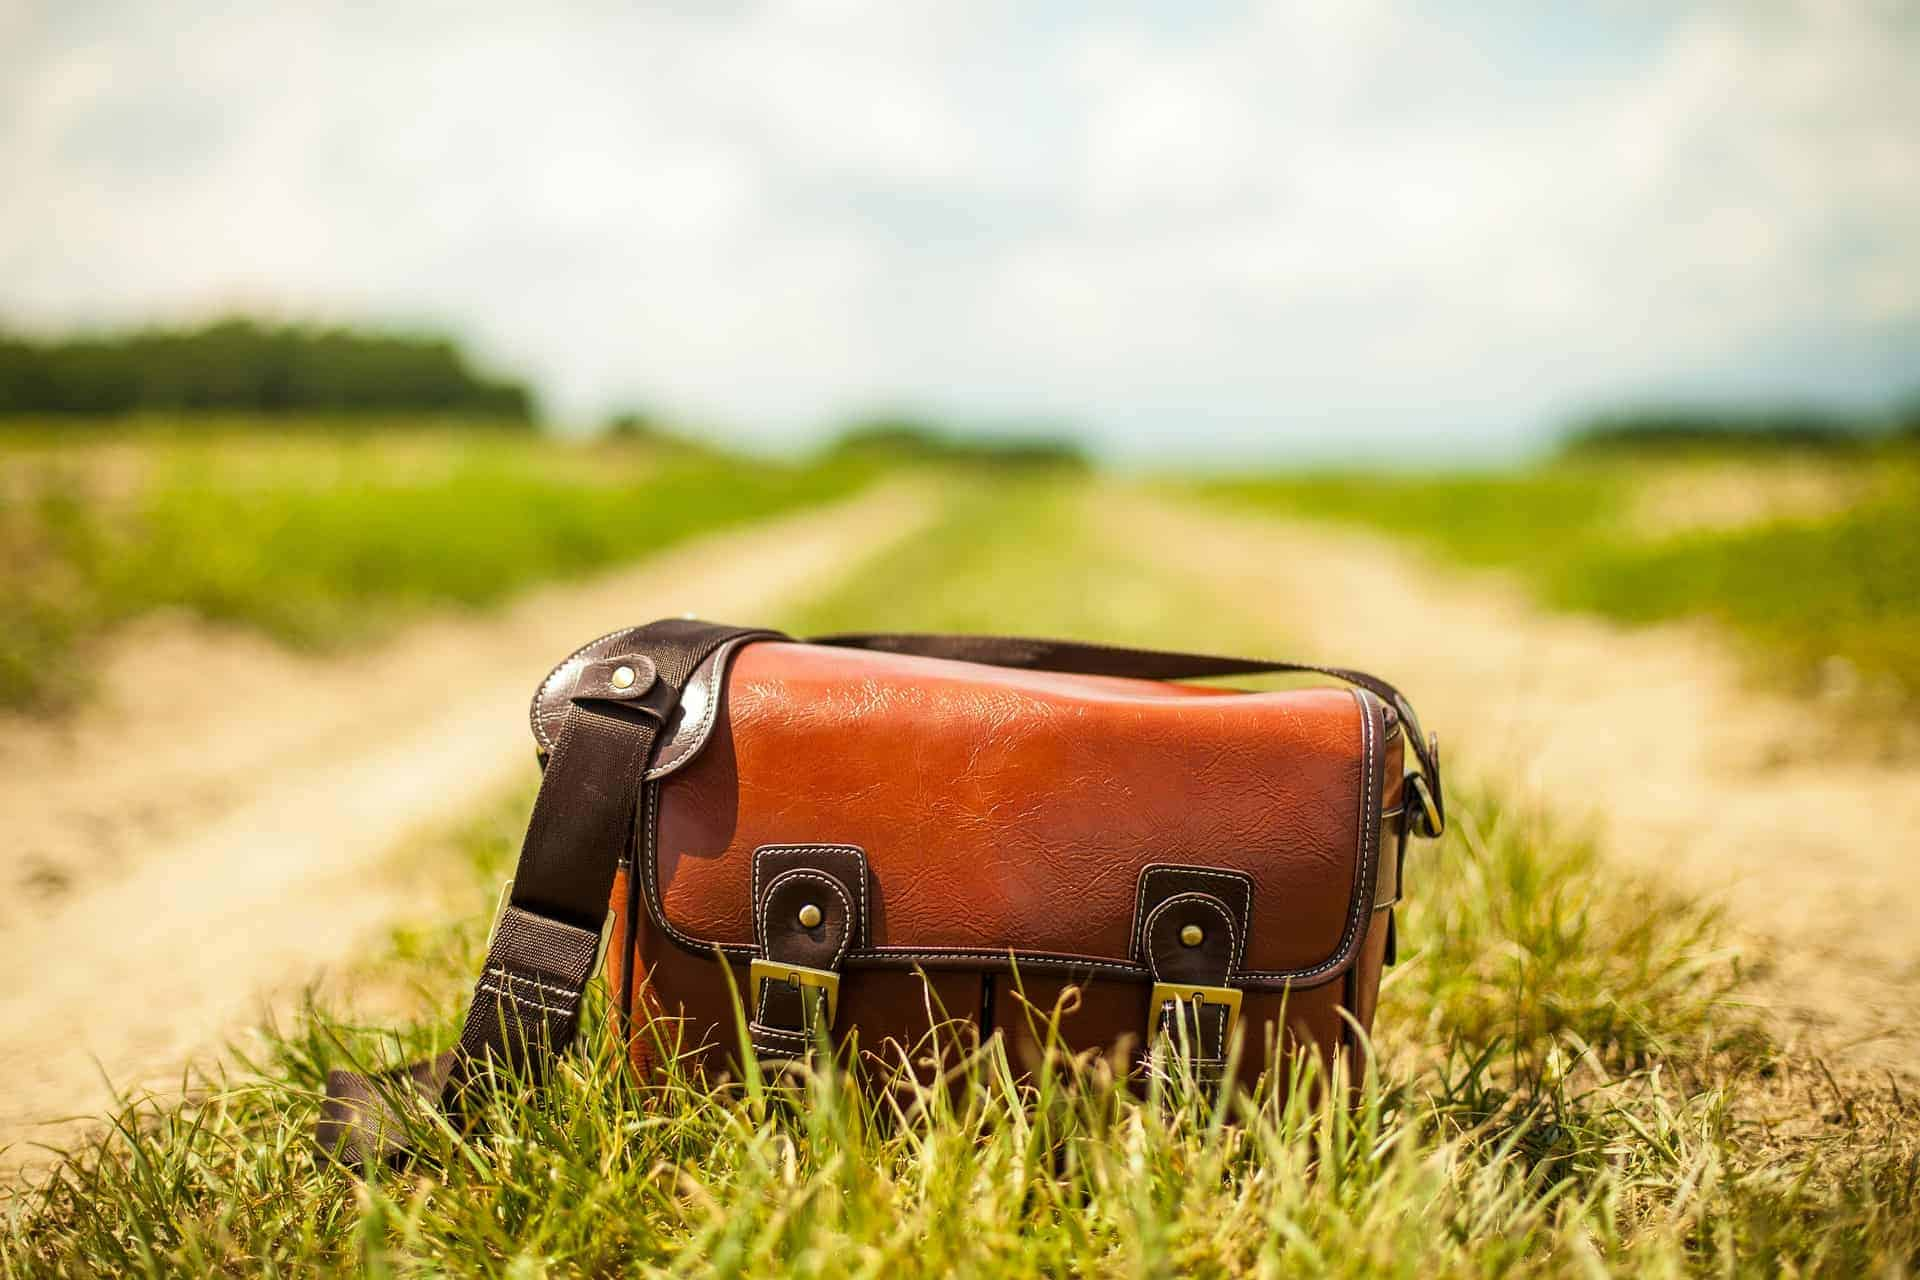 Leather Bag on a Country Road - Liberty Leather Goods